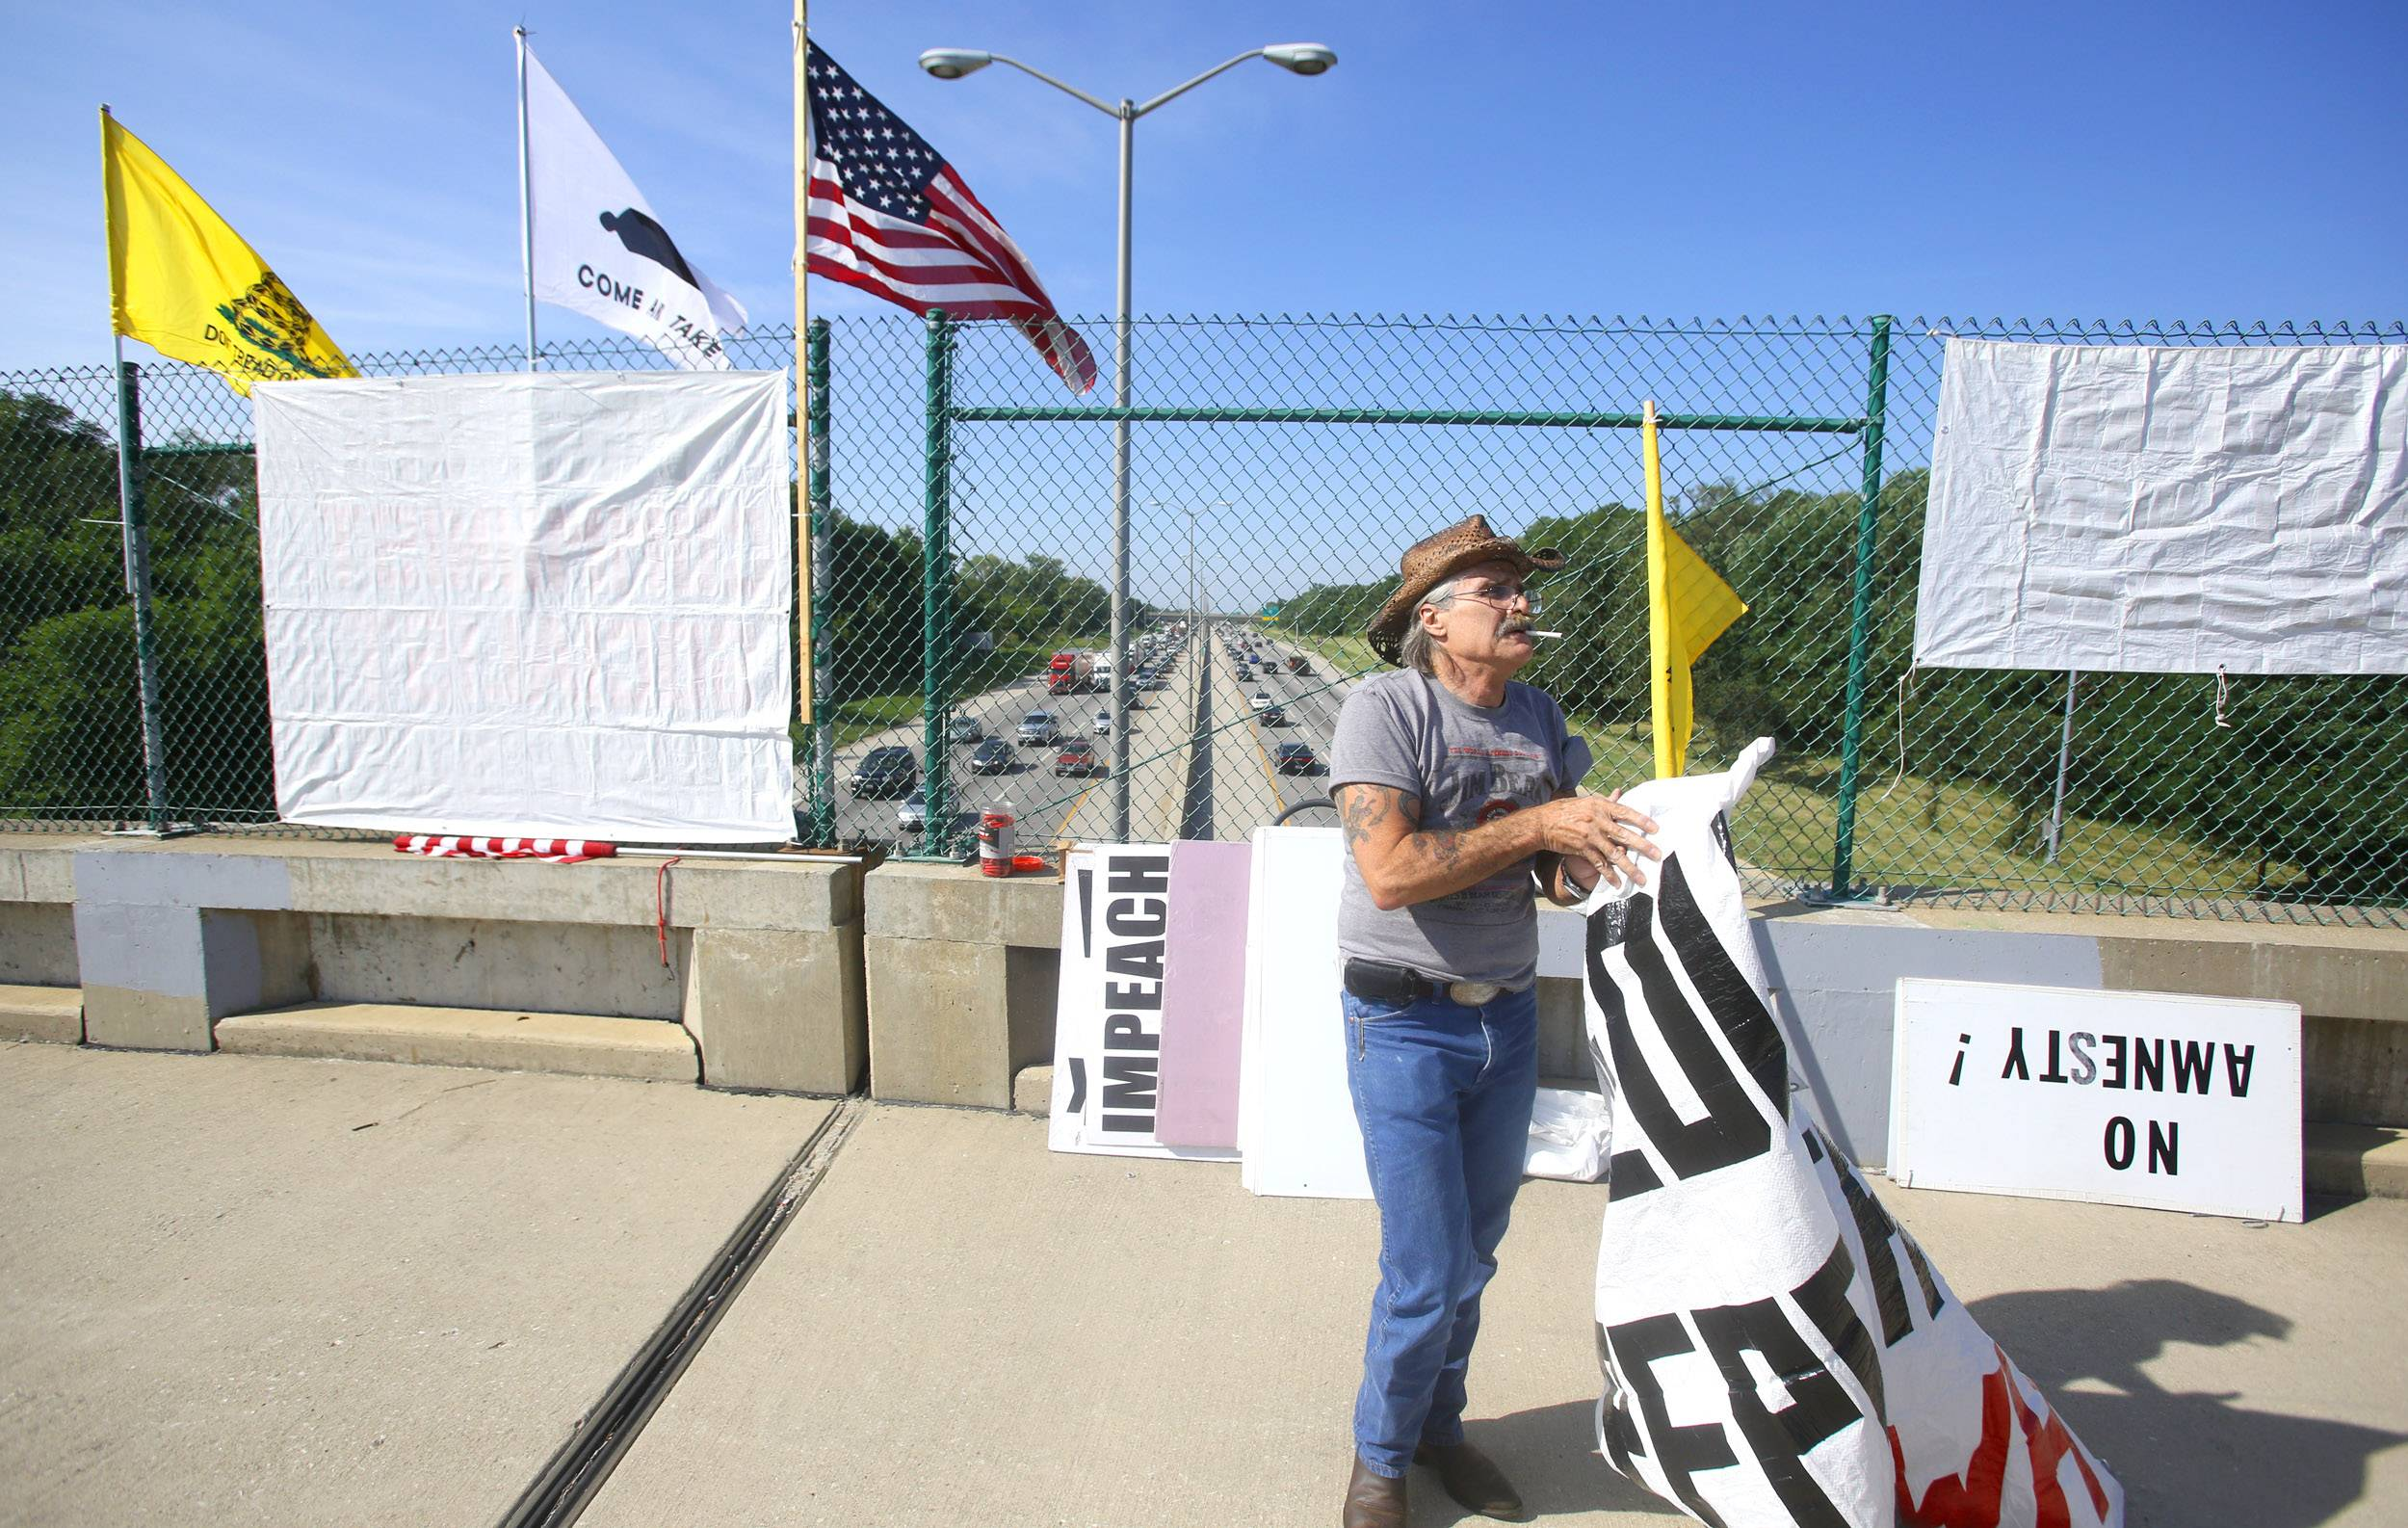 Mike Malone of the Overpasses for America group readies some protest signs on the Great Western Trail footbridge over I-355.